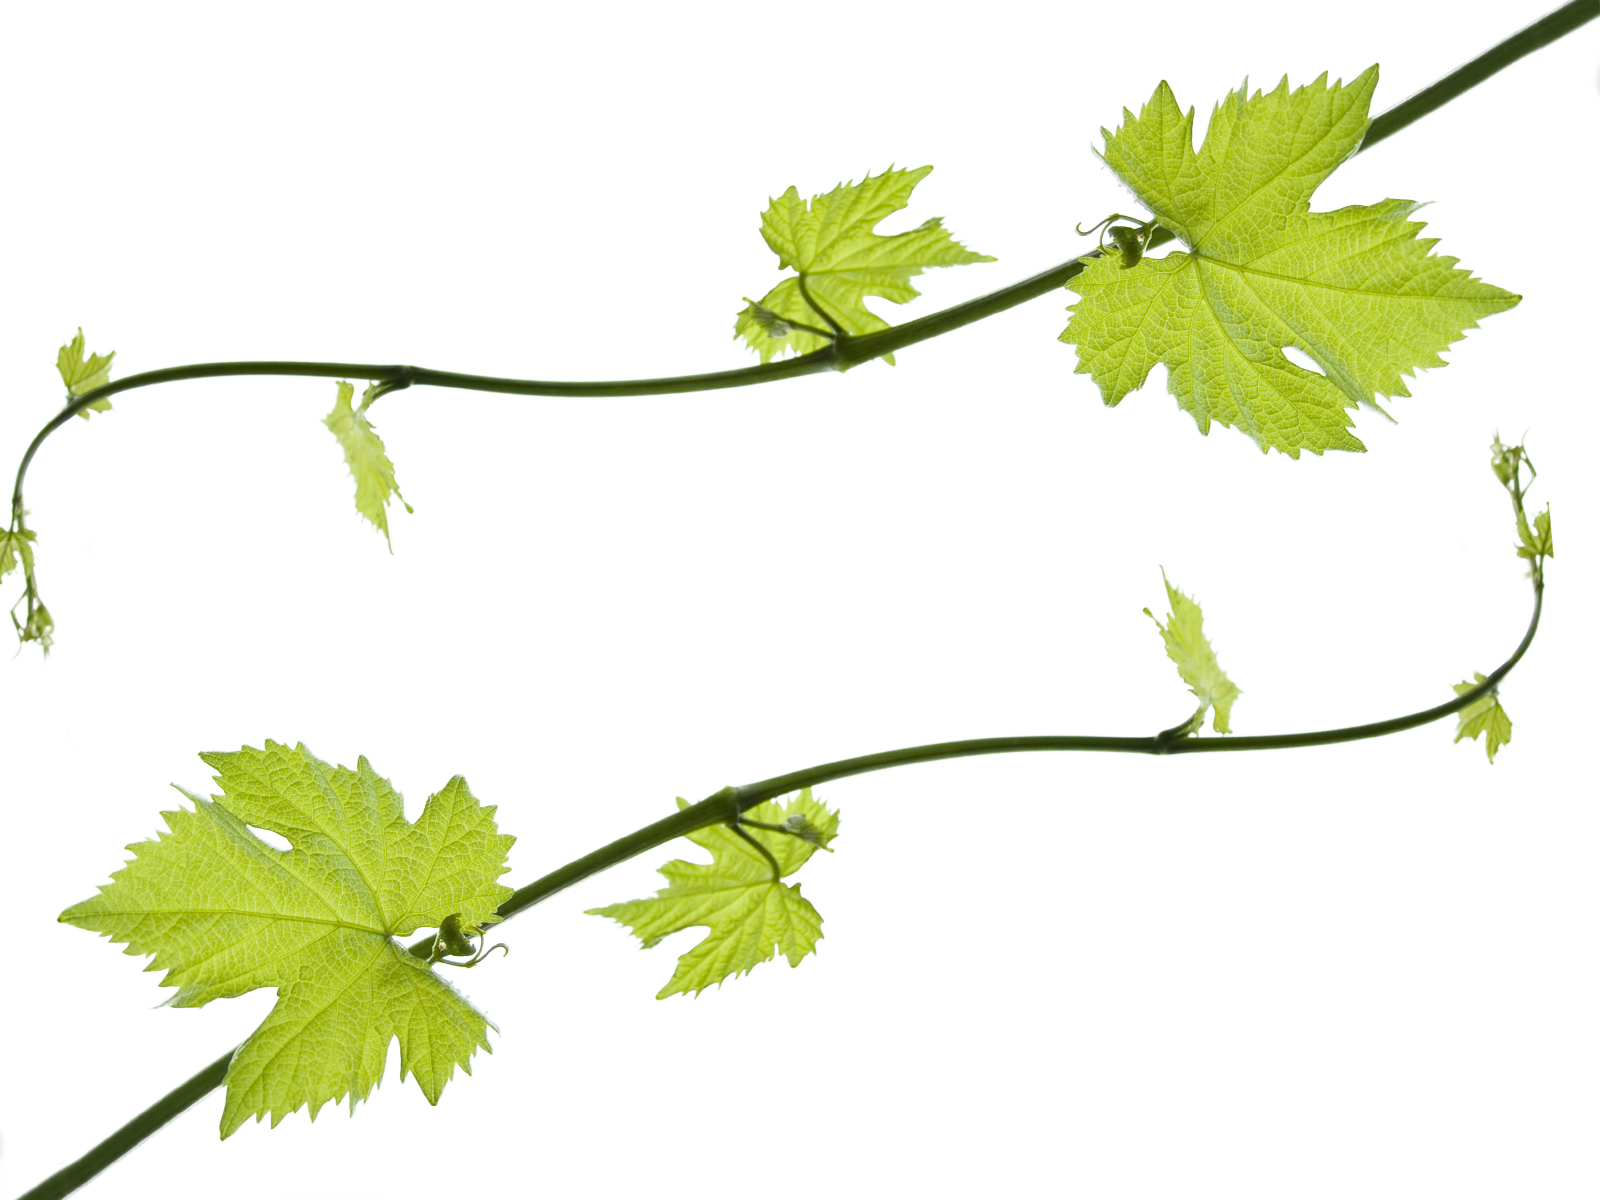 Grape Leaf Border Clipart - Clipart Kid